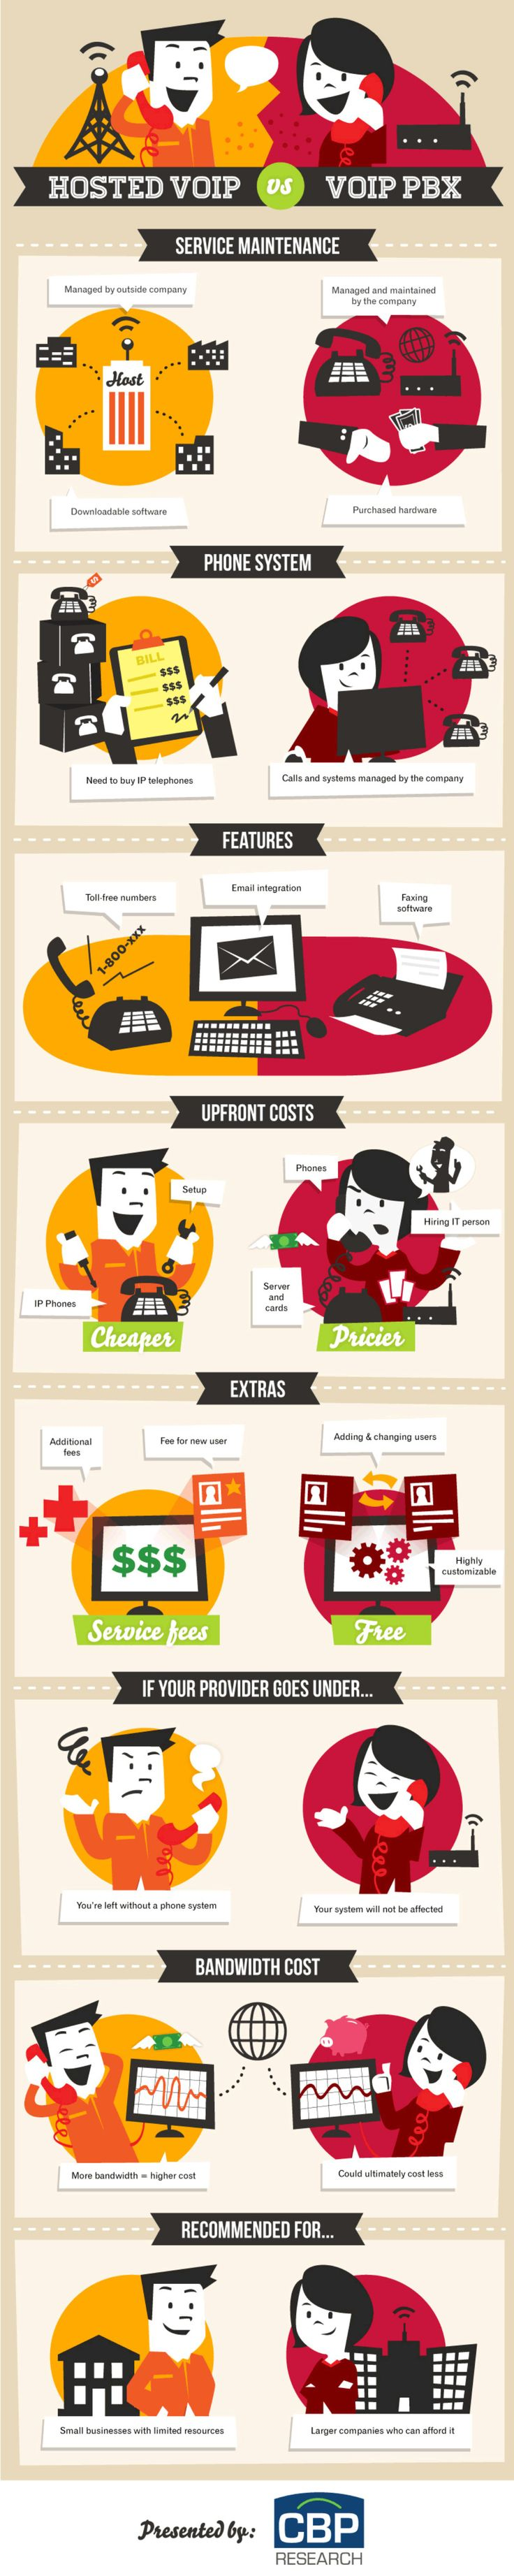 Best 25+ Hosted voip ideas on Pinterest